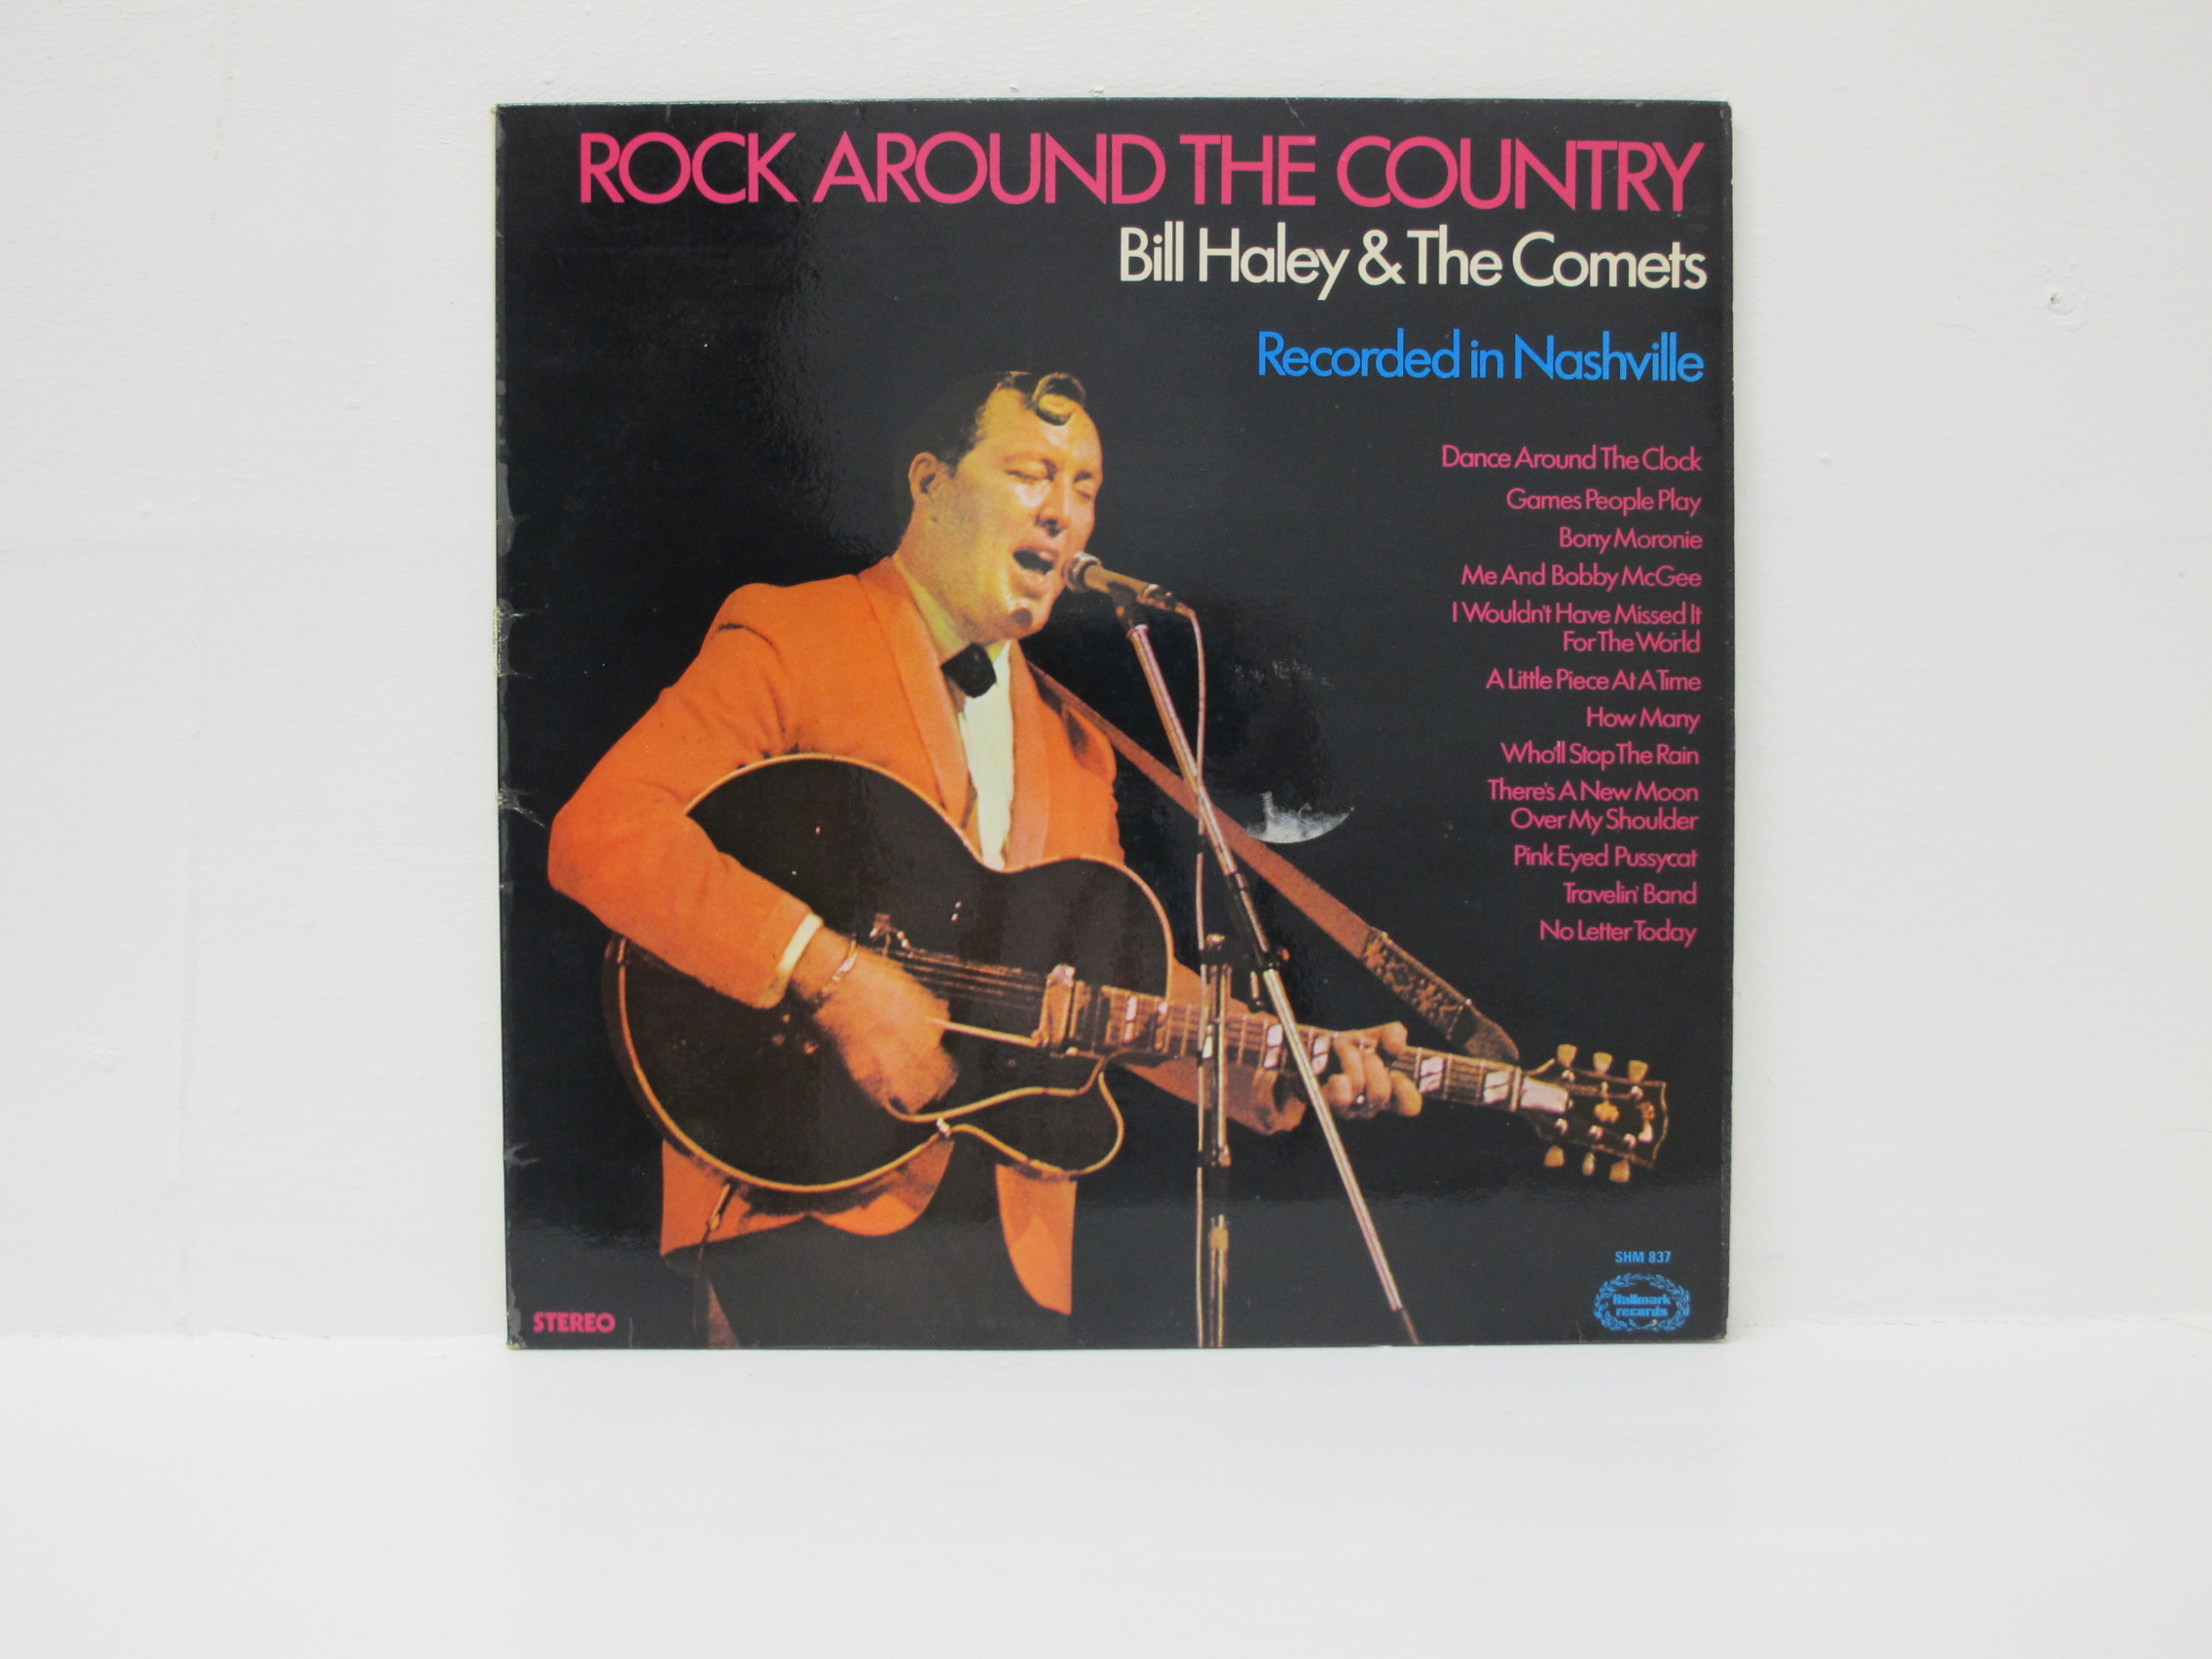 Bill Haley & The Comets - Rock Around The Country